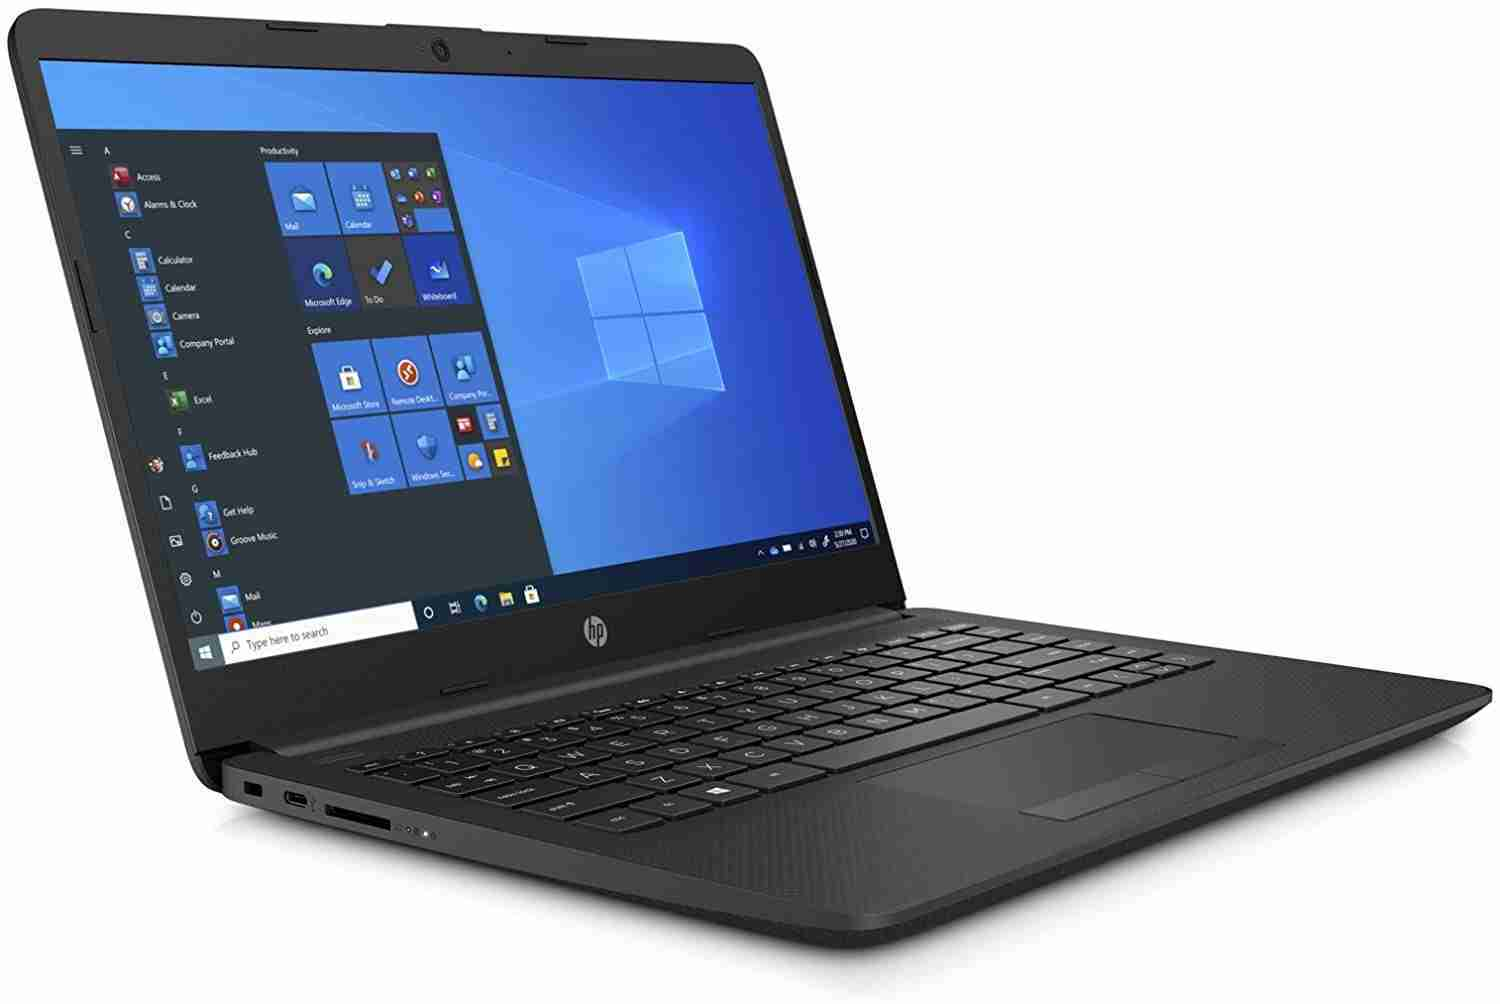 Notebook HP 240 G8 Portatile Pc